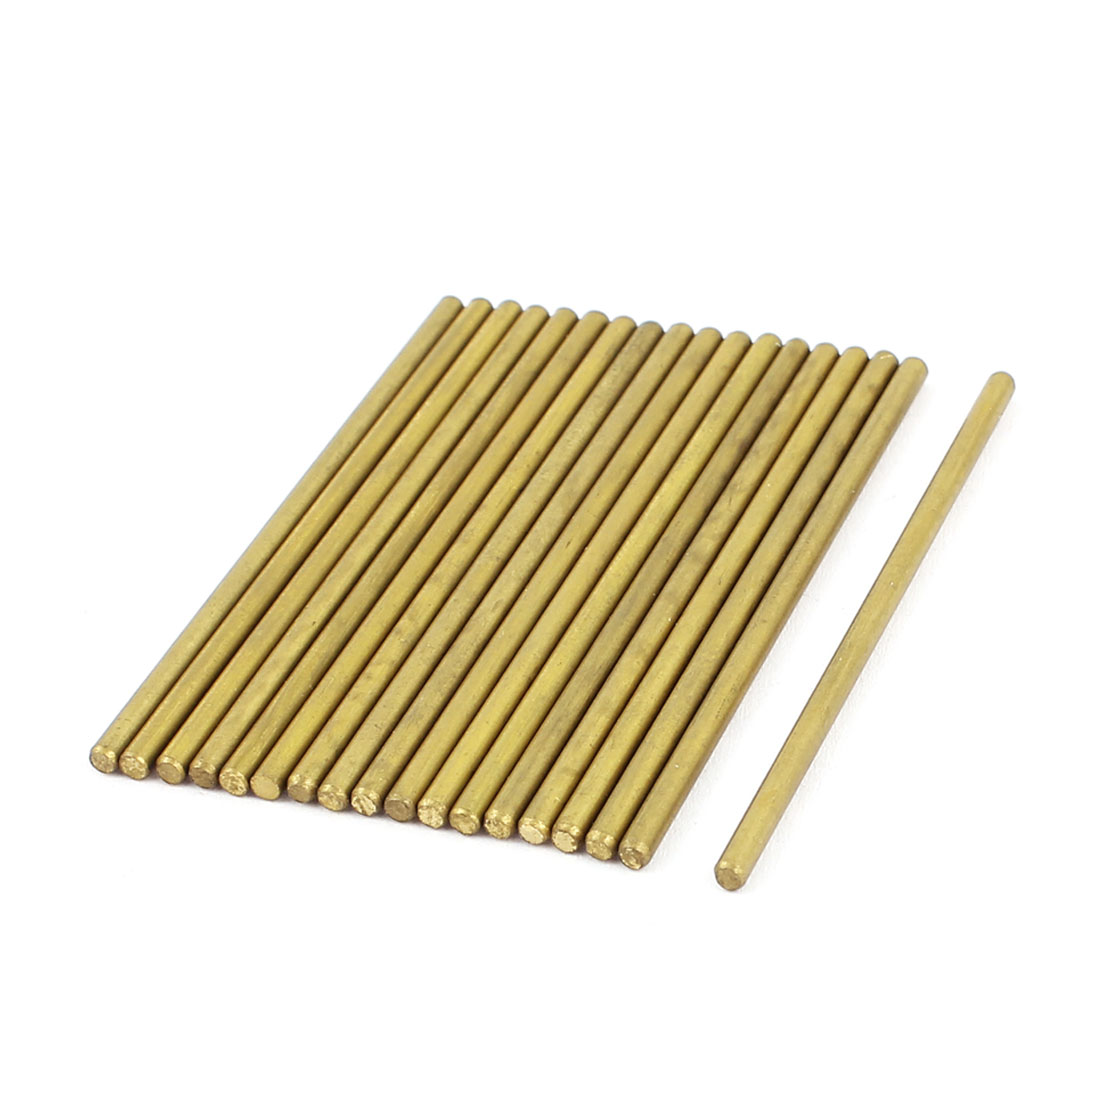 RC Helicopter Repair Parts 2mmx50mm Brass Ground Shaft Round Rod 18Pcs